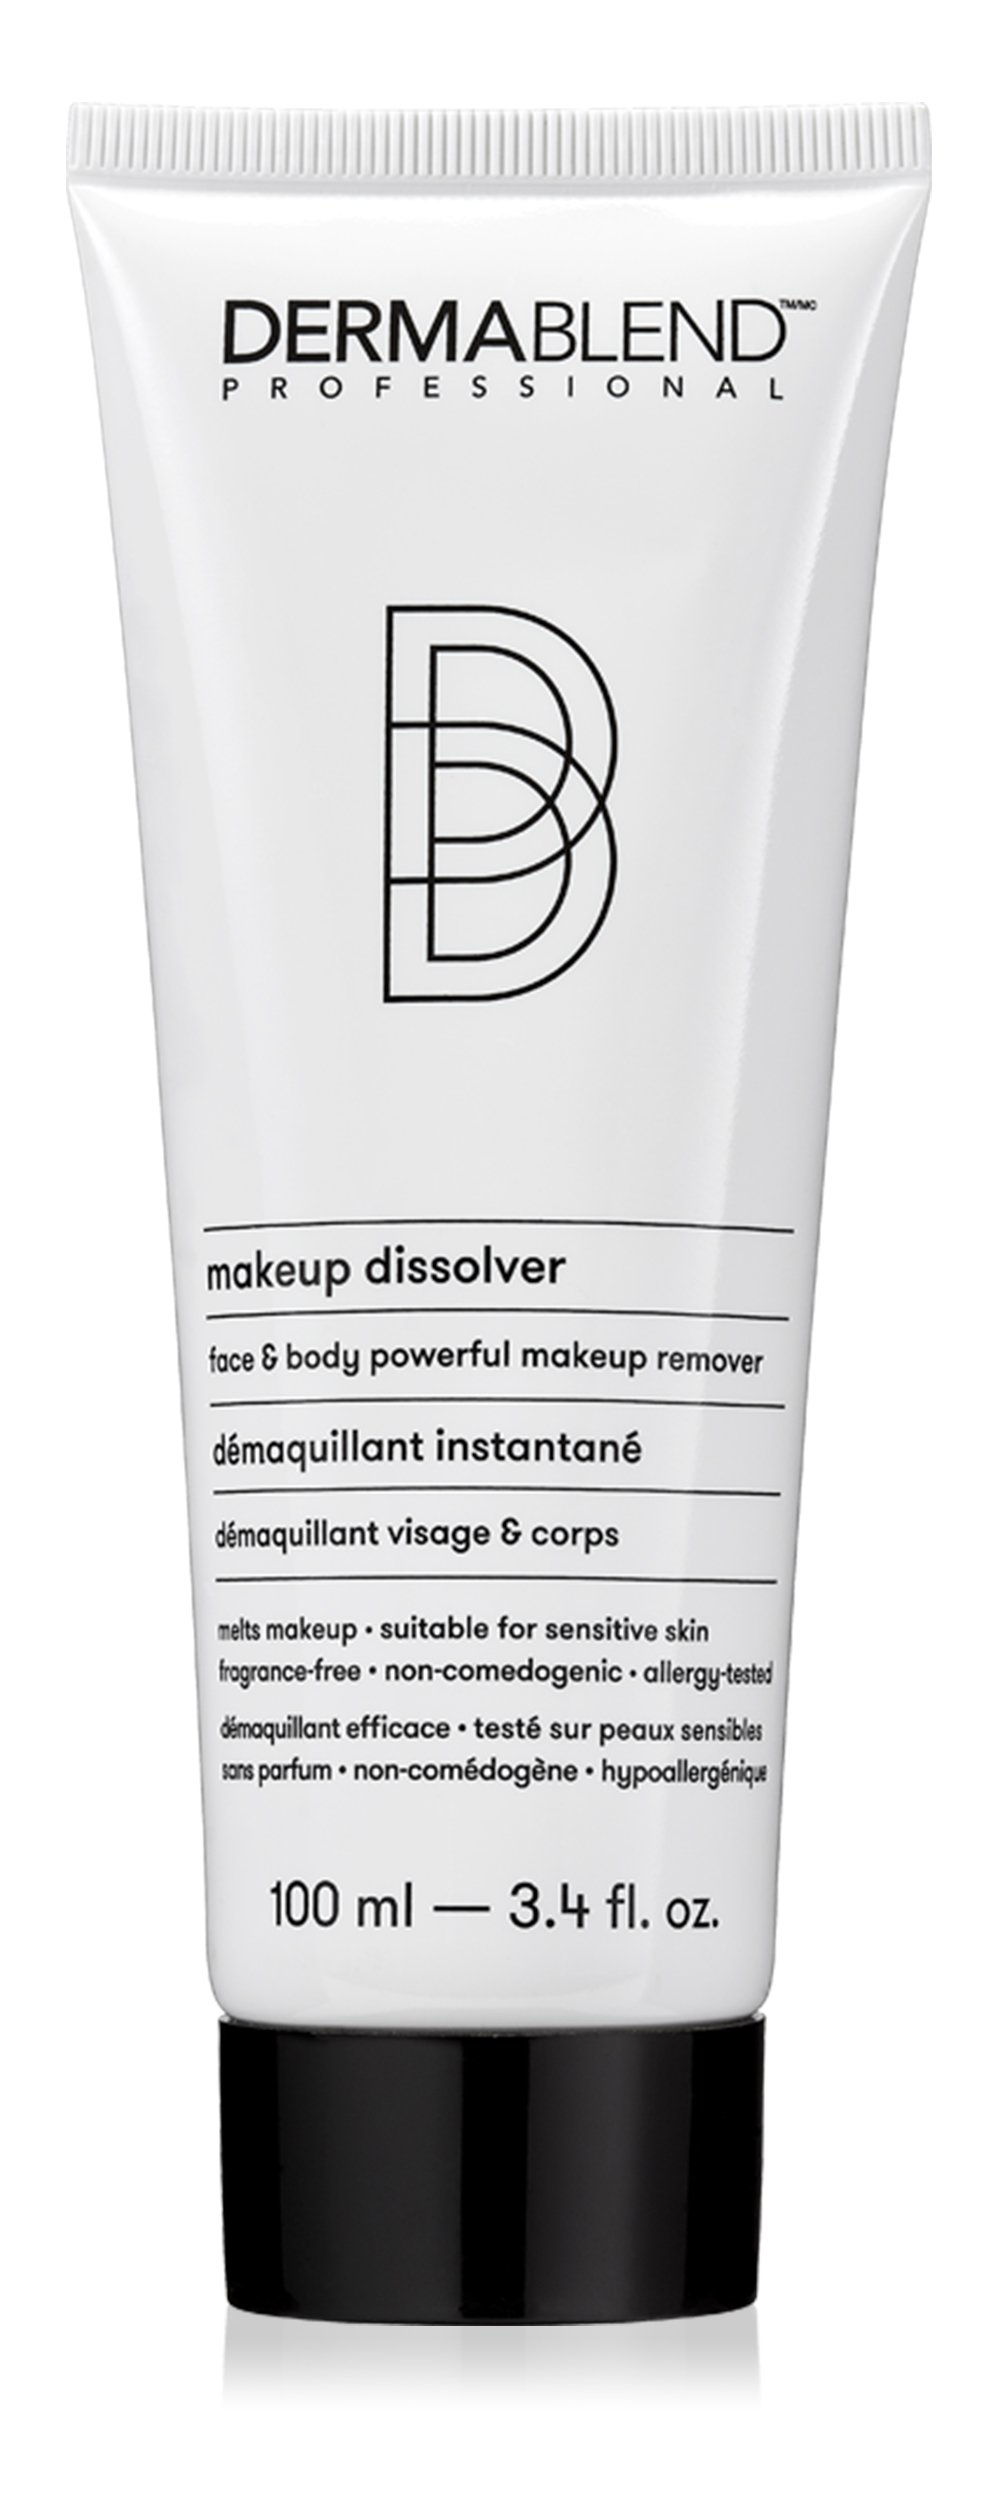 Dermablend Makeup Remover Dissolver for Face and Body, 3.4 Fl. Oz. by Dermablend